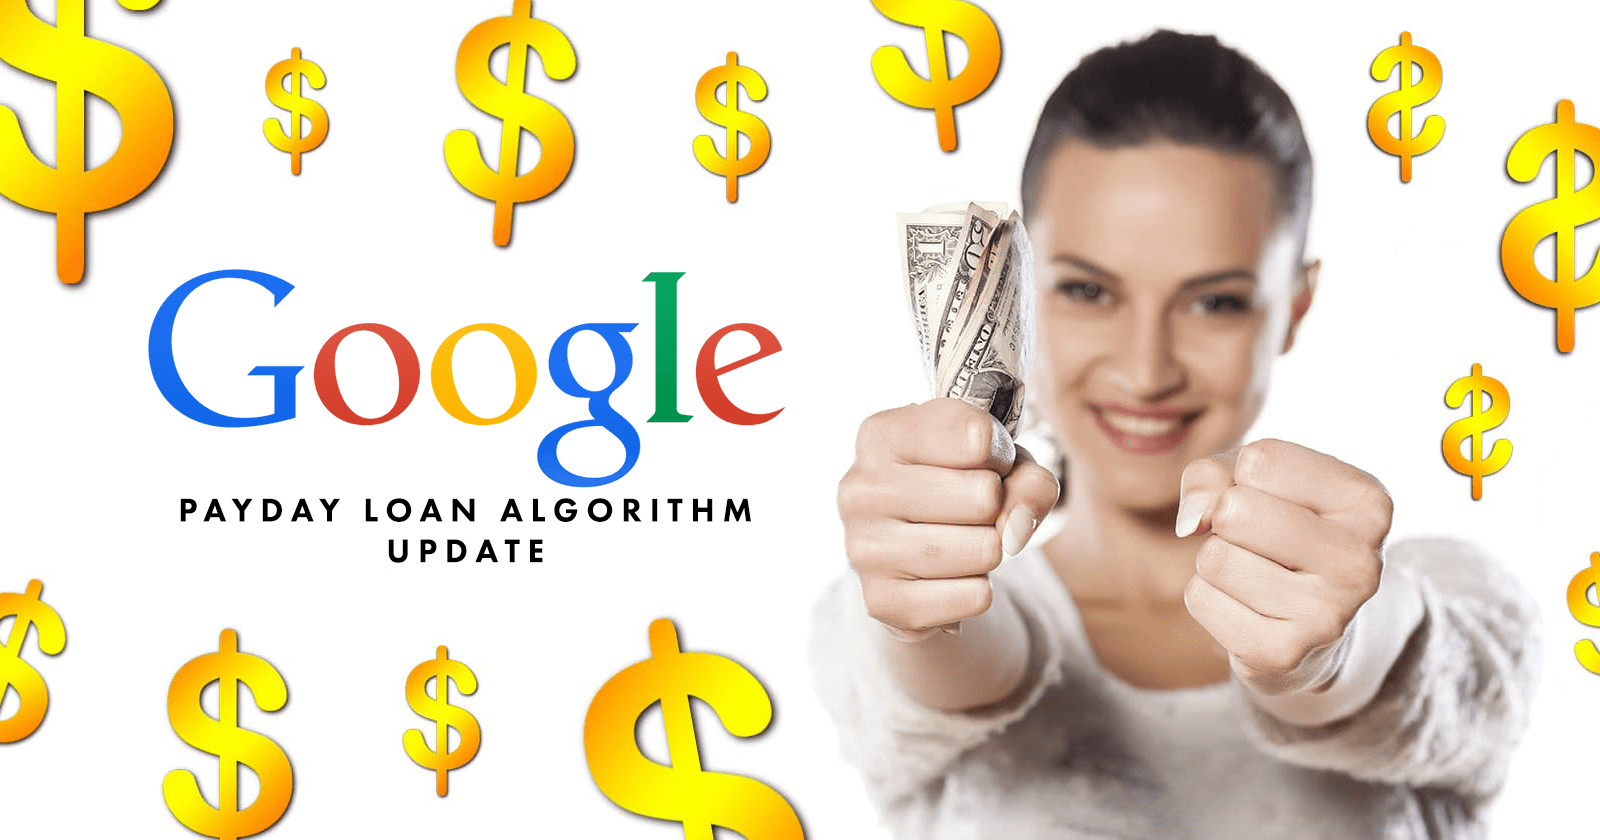 Google Payday